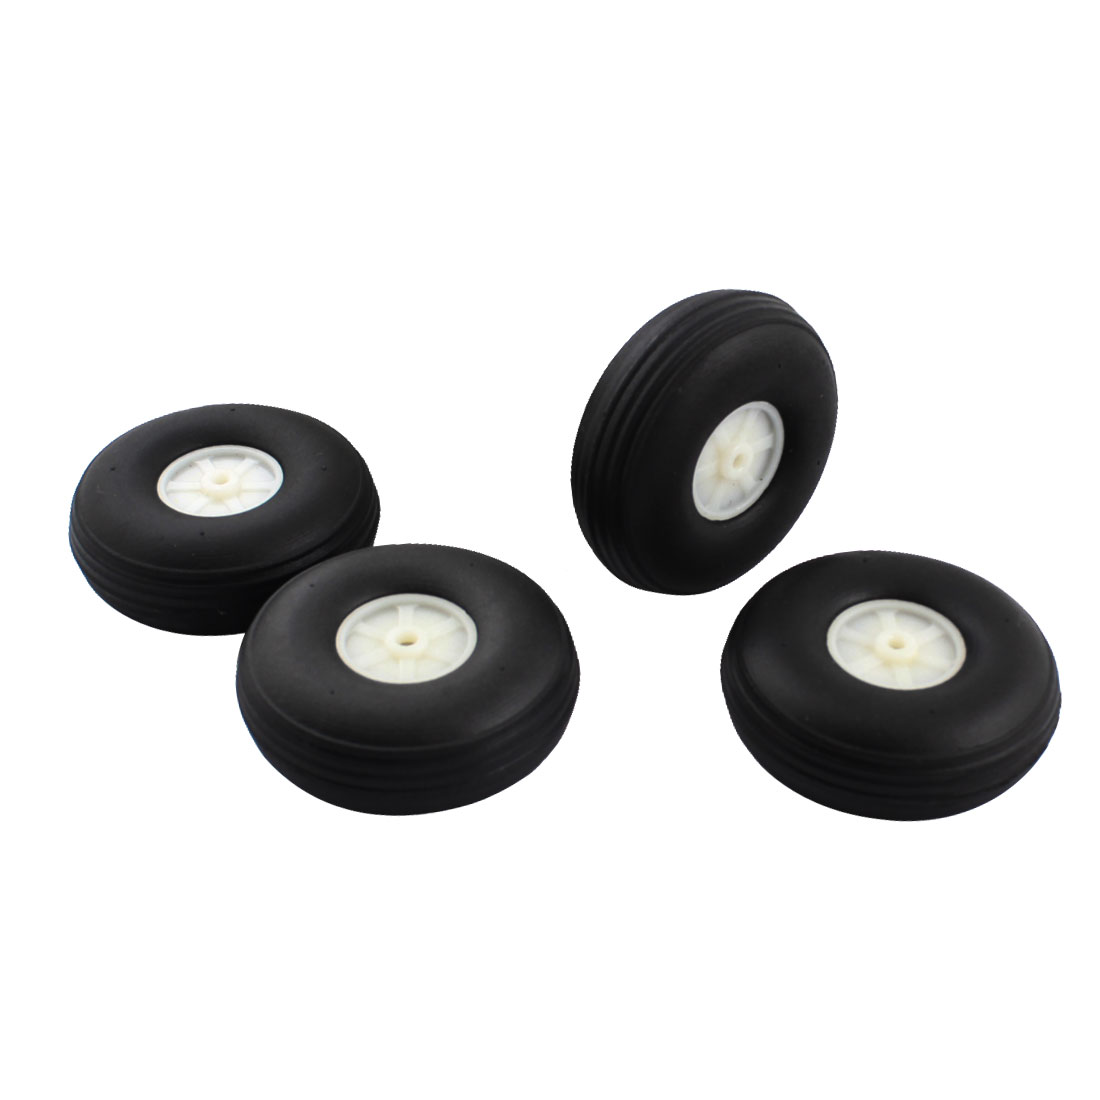 "DIY Robot Airplane Model Part 0.15"" Hole Black Rubber Wheel Tire Tyre 63.5mm x 22mm 4Pcs"